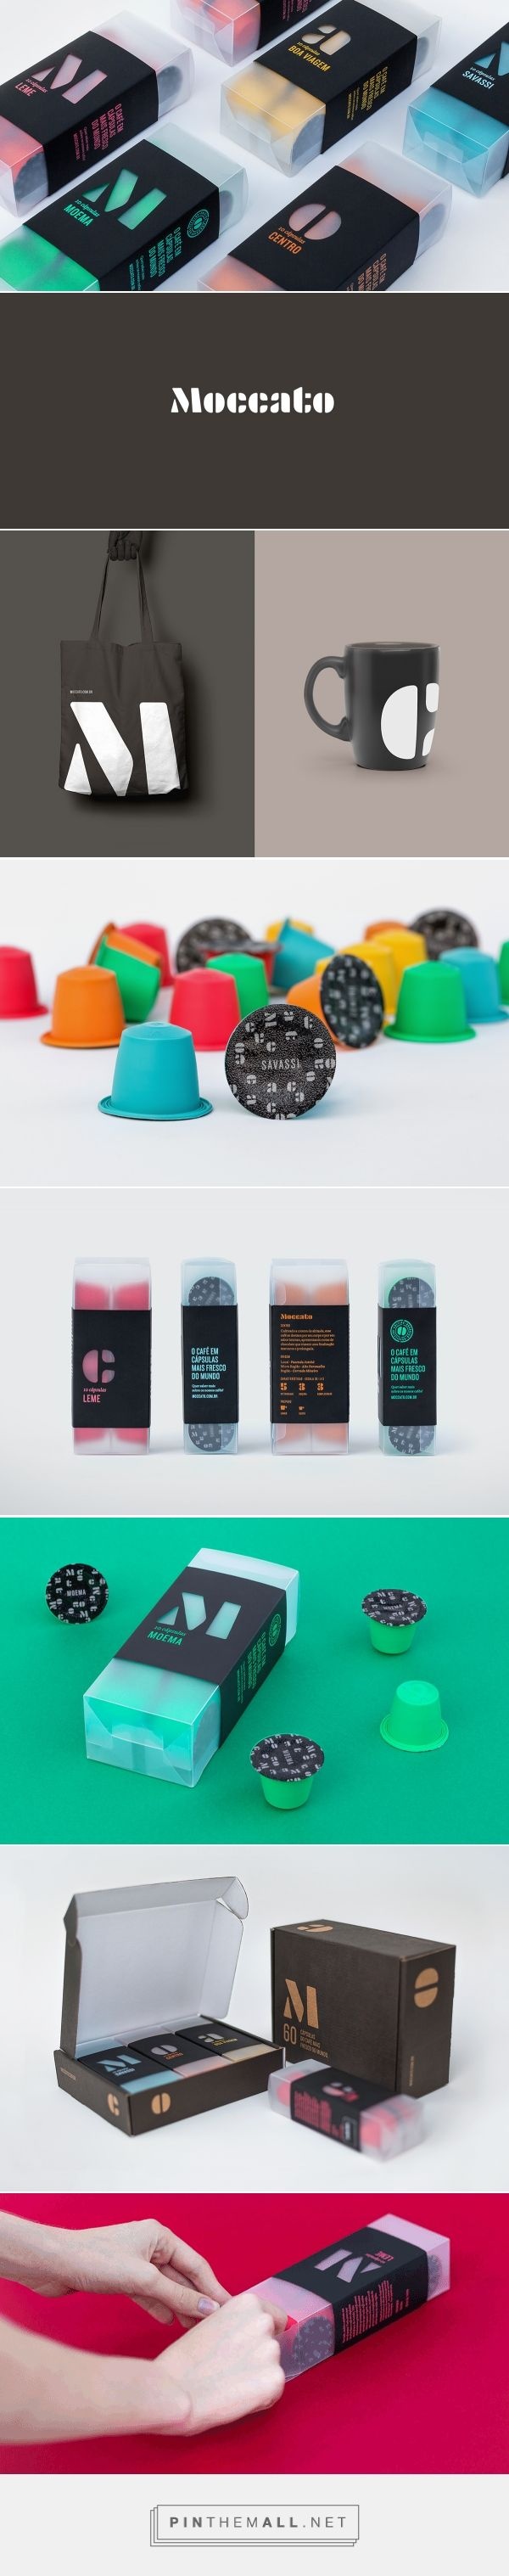 Moccato on Pantone Canvas Gallery curated by Packaging Diva PD. Packaging branding identity for Moccato, a coffee club for hardcore coffee lovers.